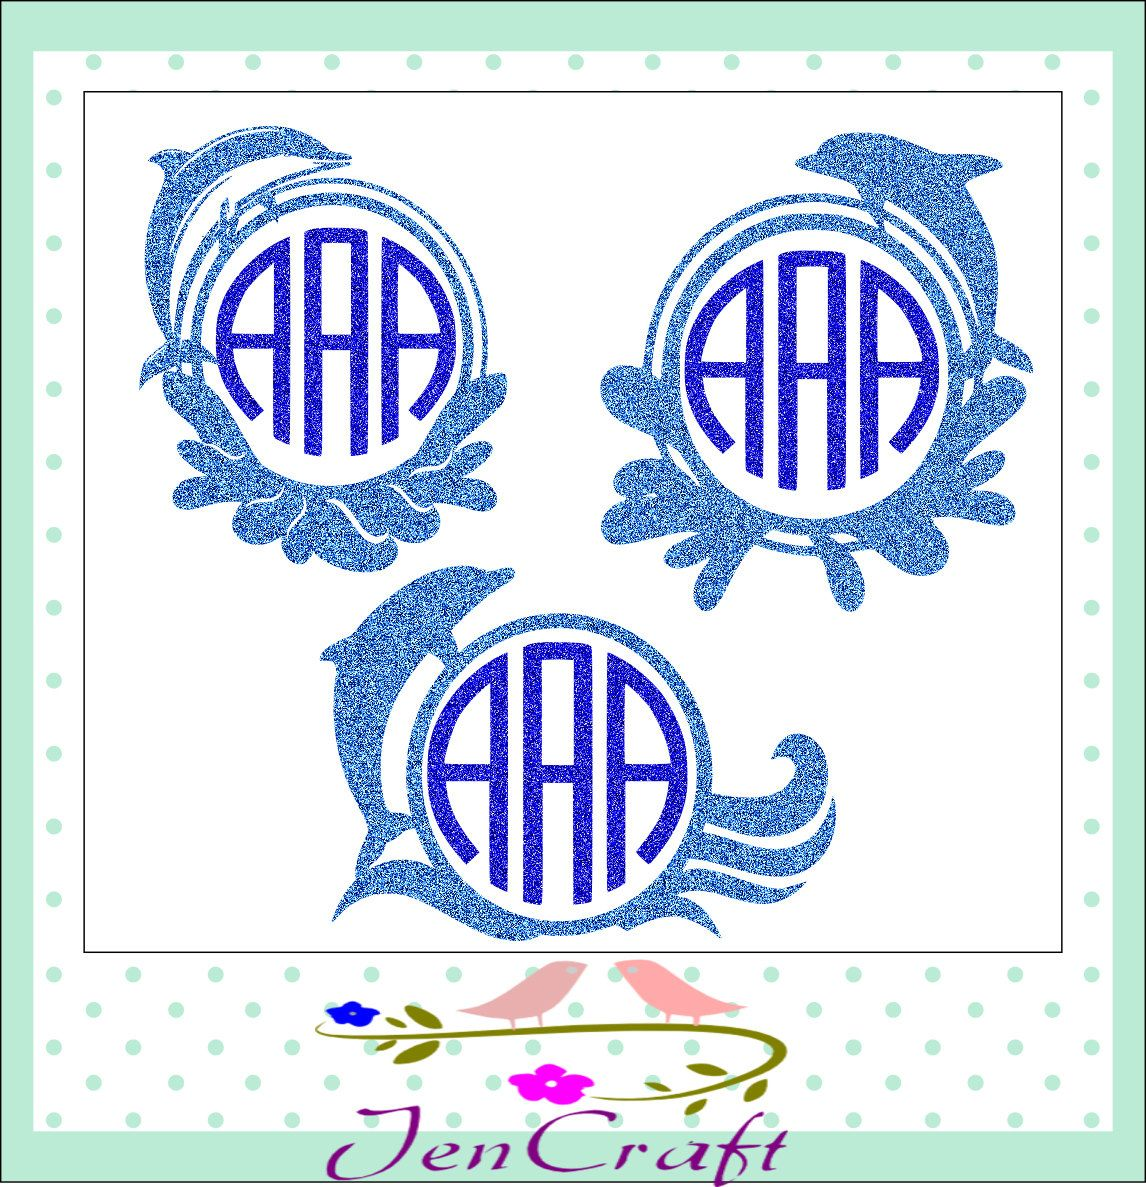 Dolphin Monogram Frame SVG, Dolphin SVG Cut Files - Monogram Frames for   Vinyl Cutters, Screen Printing, Silhouette, Die Cut Machines by JenCraftDesigns on Etsy